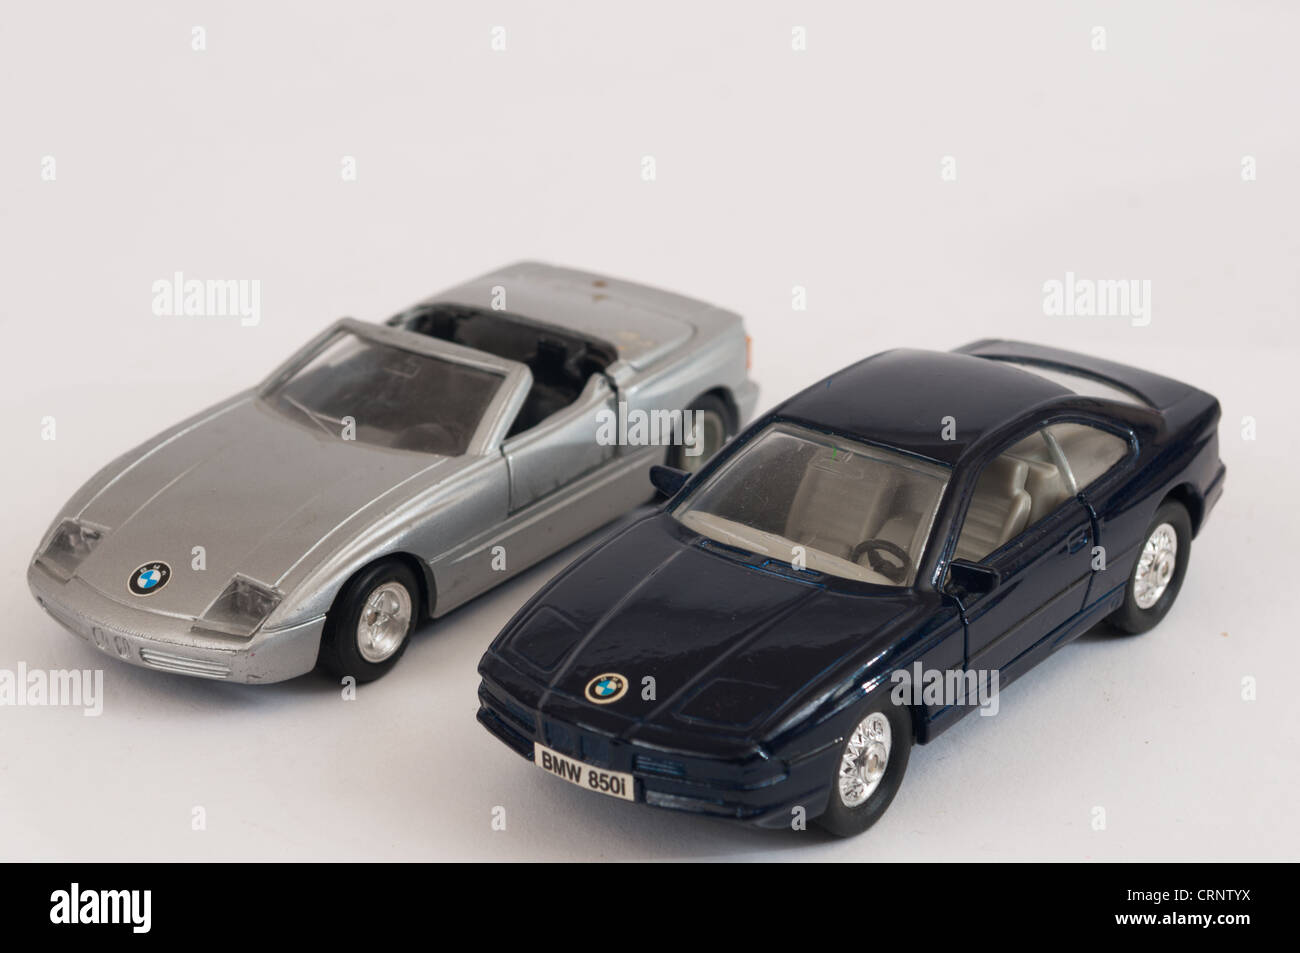 2 BMW windup toy cars - Stock Image